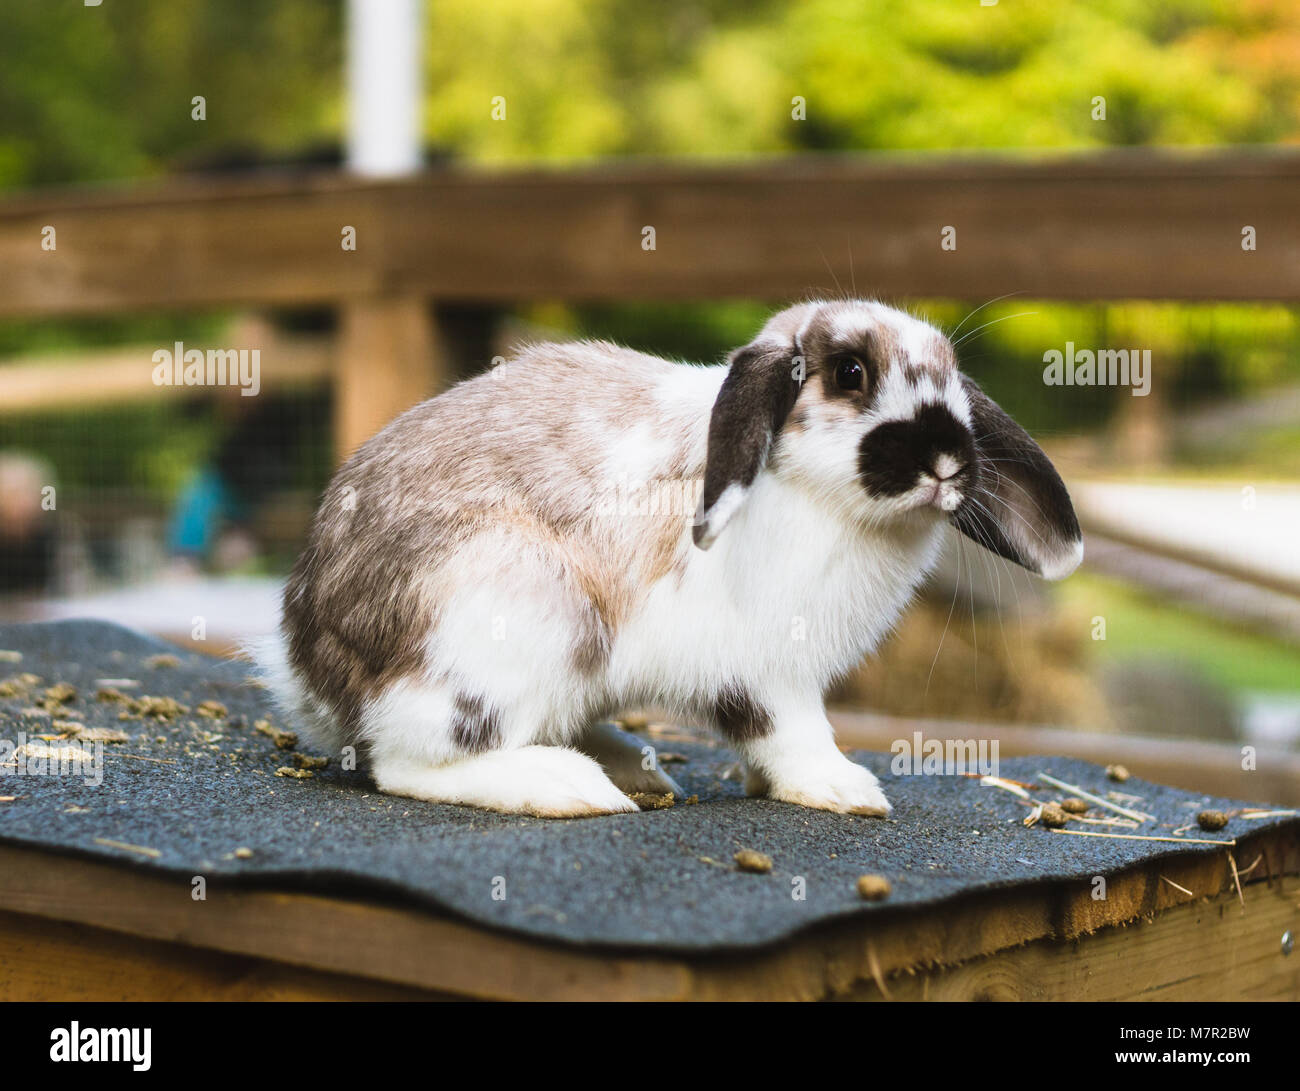 Rabbit in its natural environment in Sweden. Cute bunny outdoors on its house, autumn or spring season. Easter concept - Stock Image